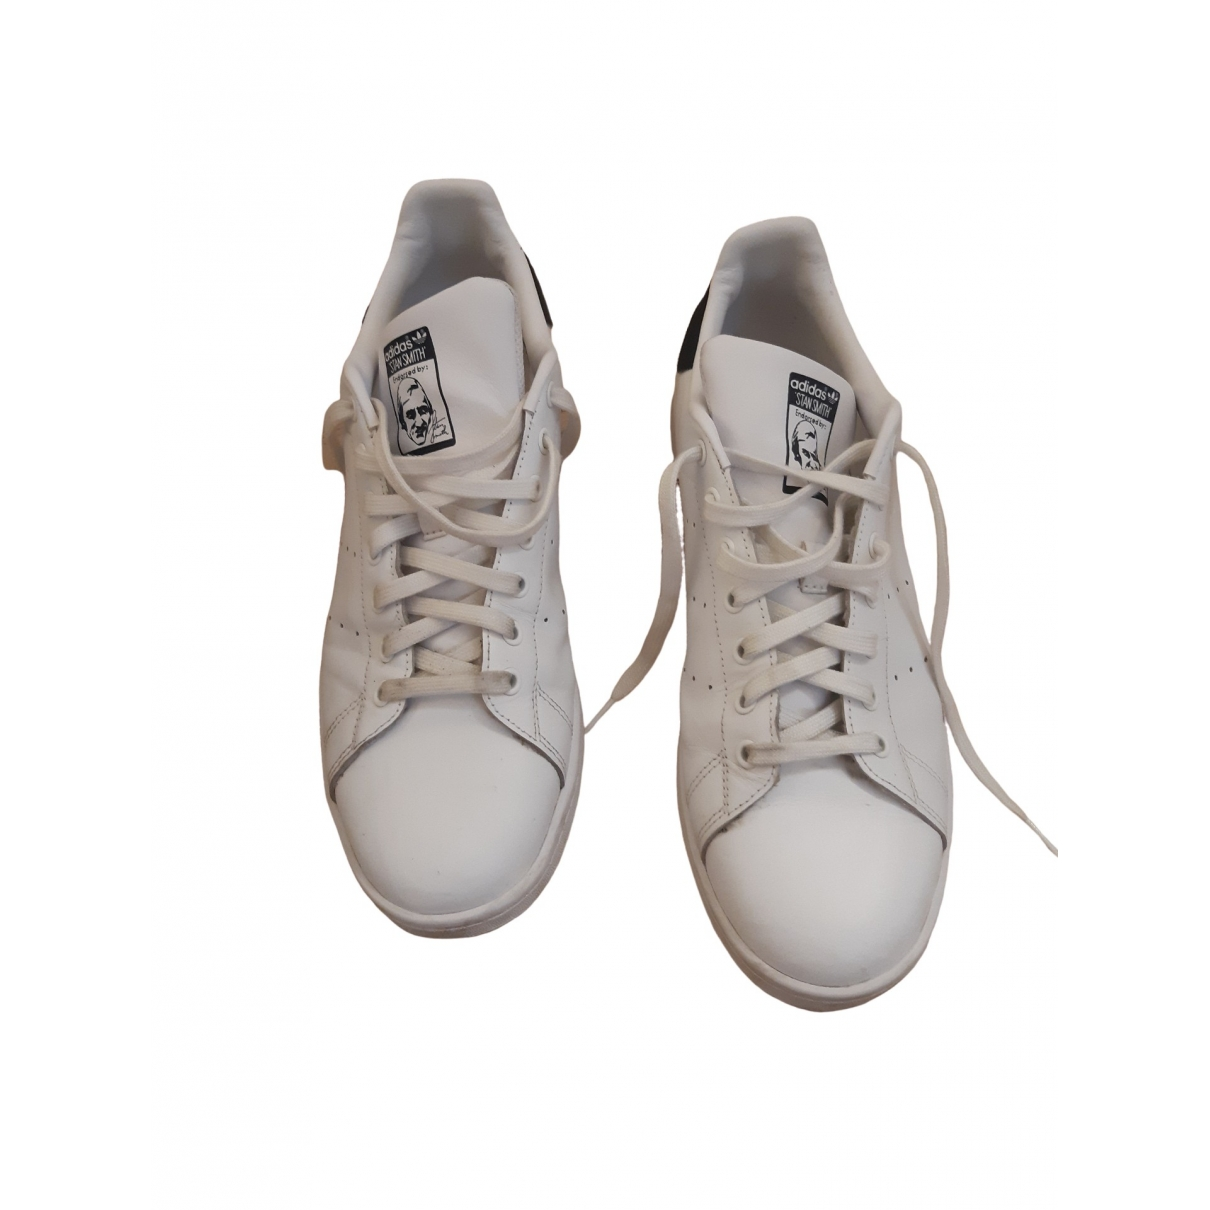 Adidas Stan Smith White Leather Trainers for Men 12.5 US